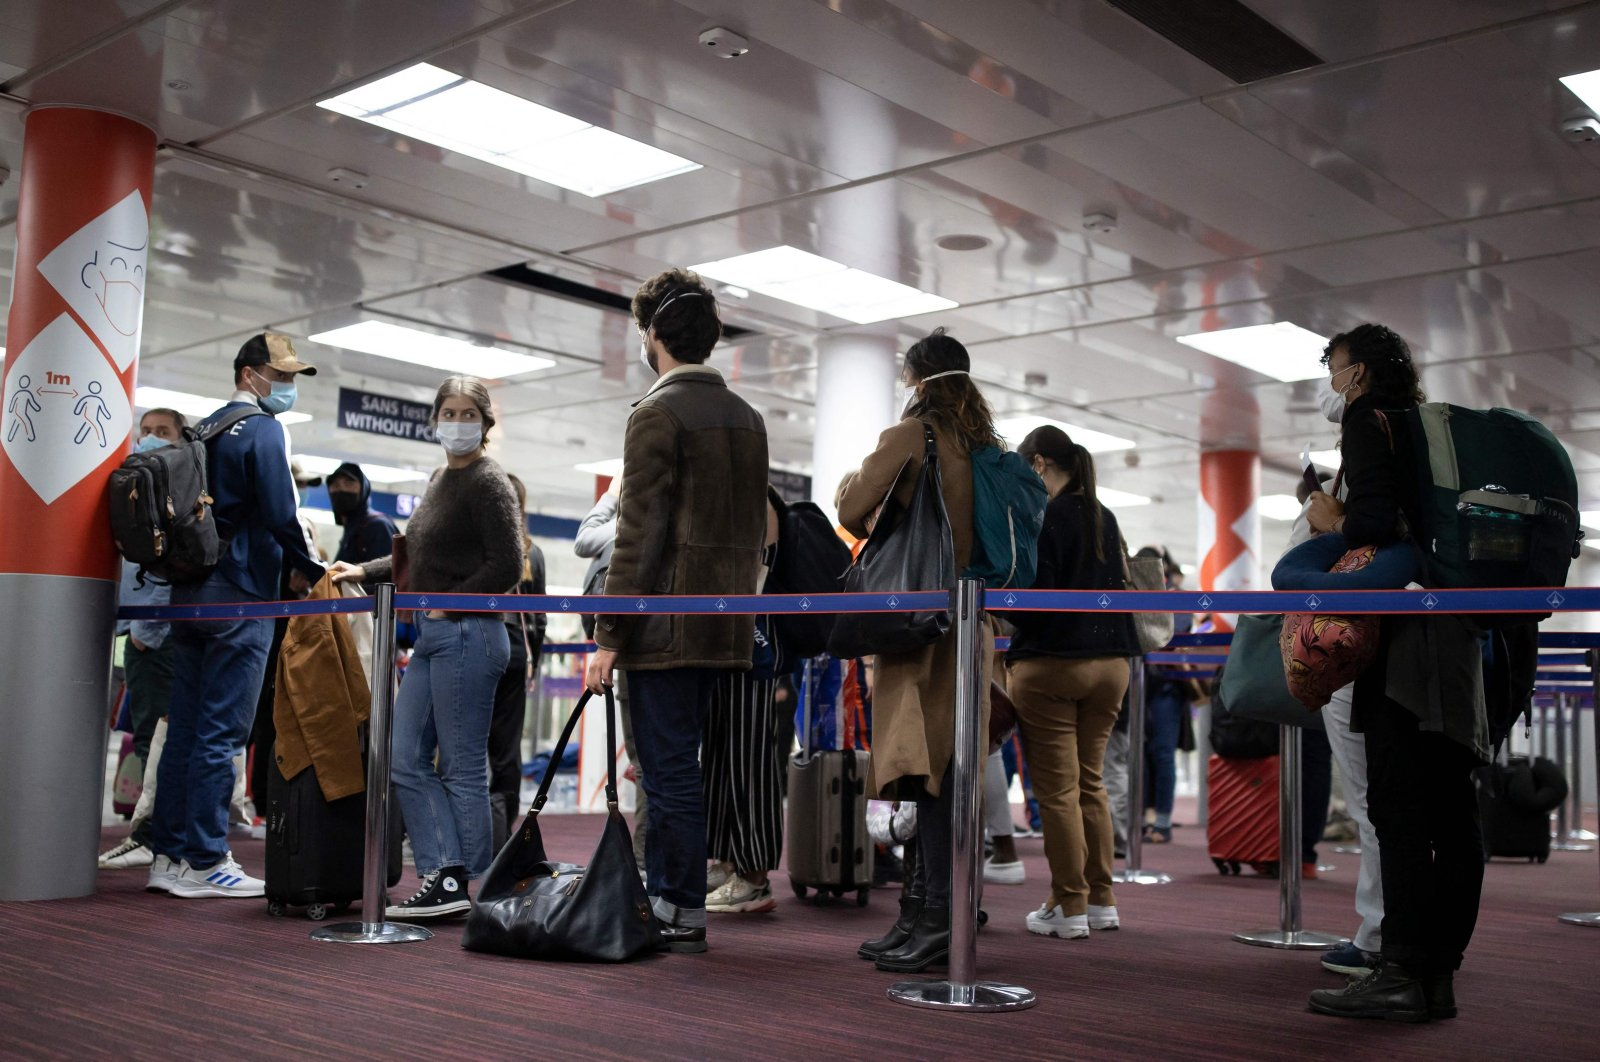 Passengers queue up at the passport control area of Roissy Charles de Gaulle airport in Roissy, near Paris, France, April 25, 2021. (AFP Photo)